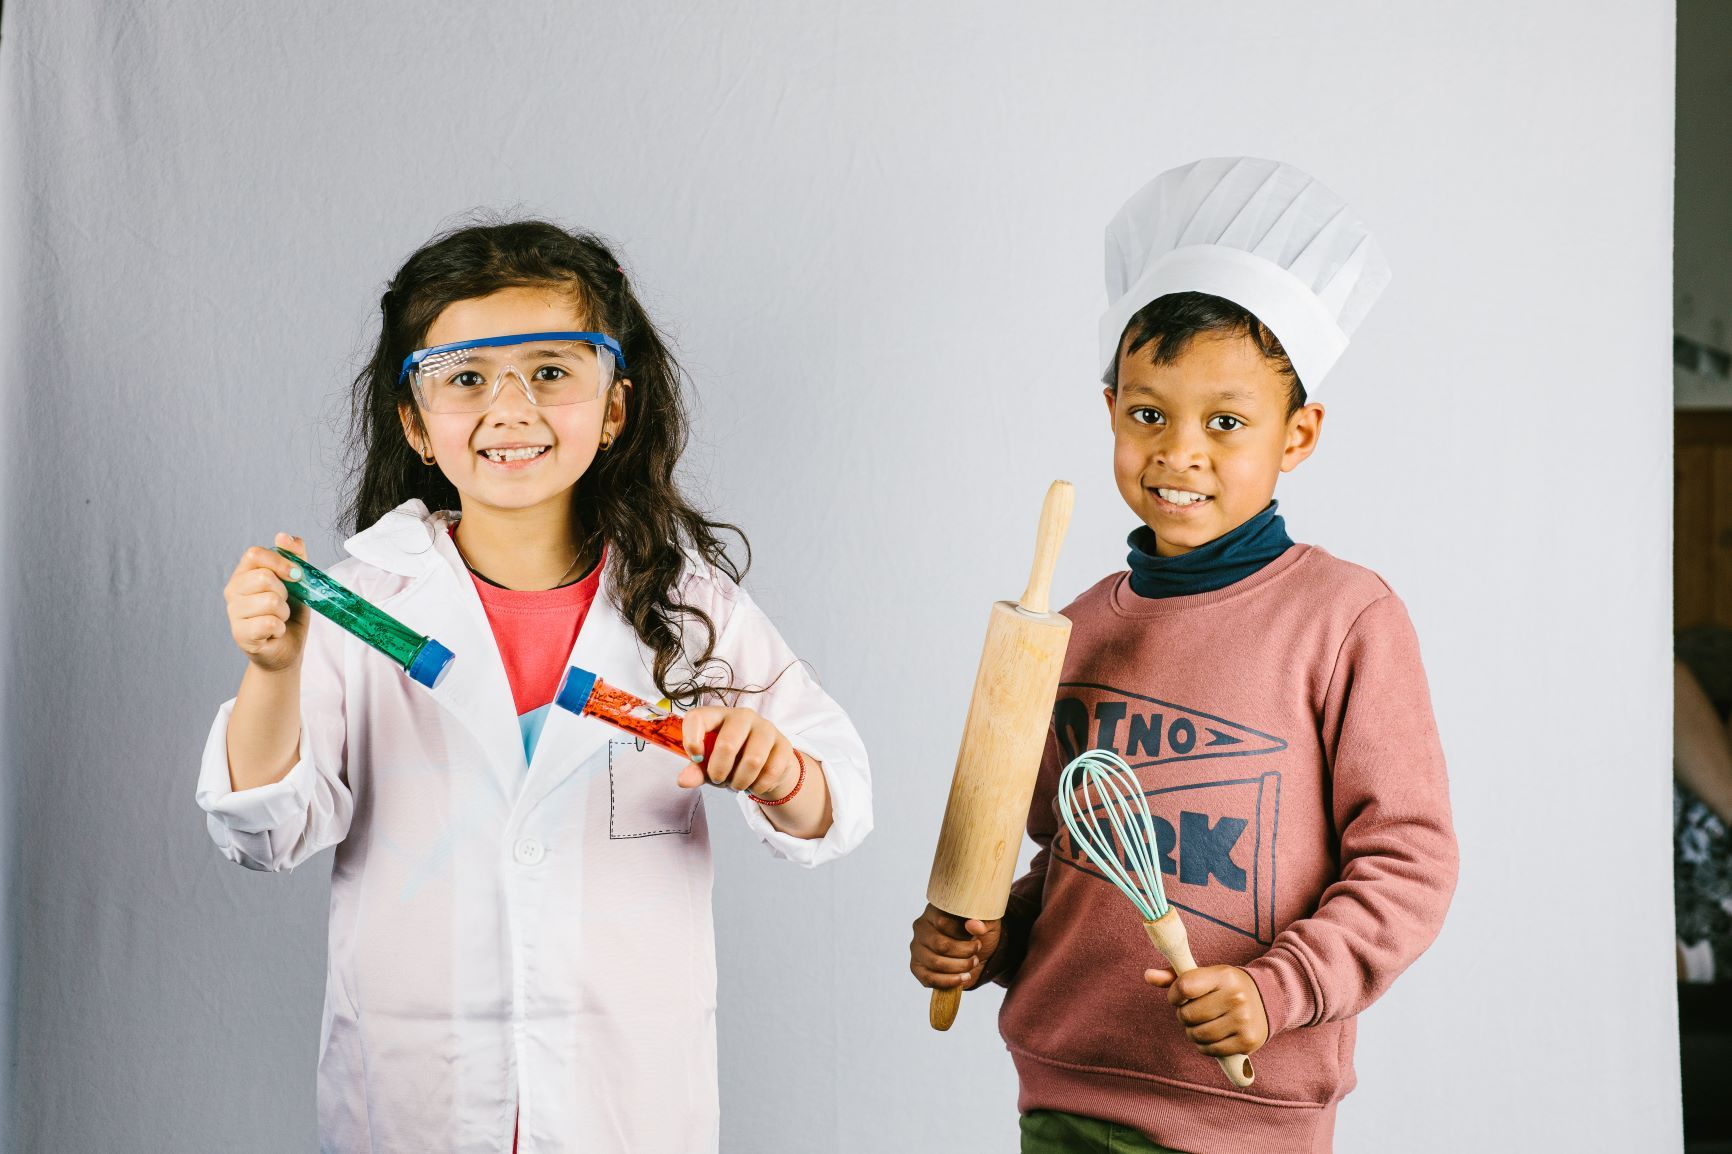 Camp Australia Partners with Dietitians for National Science Week